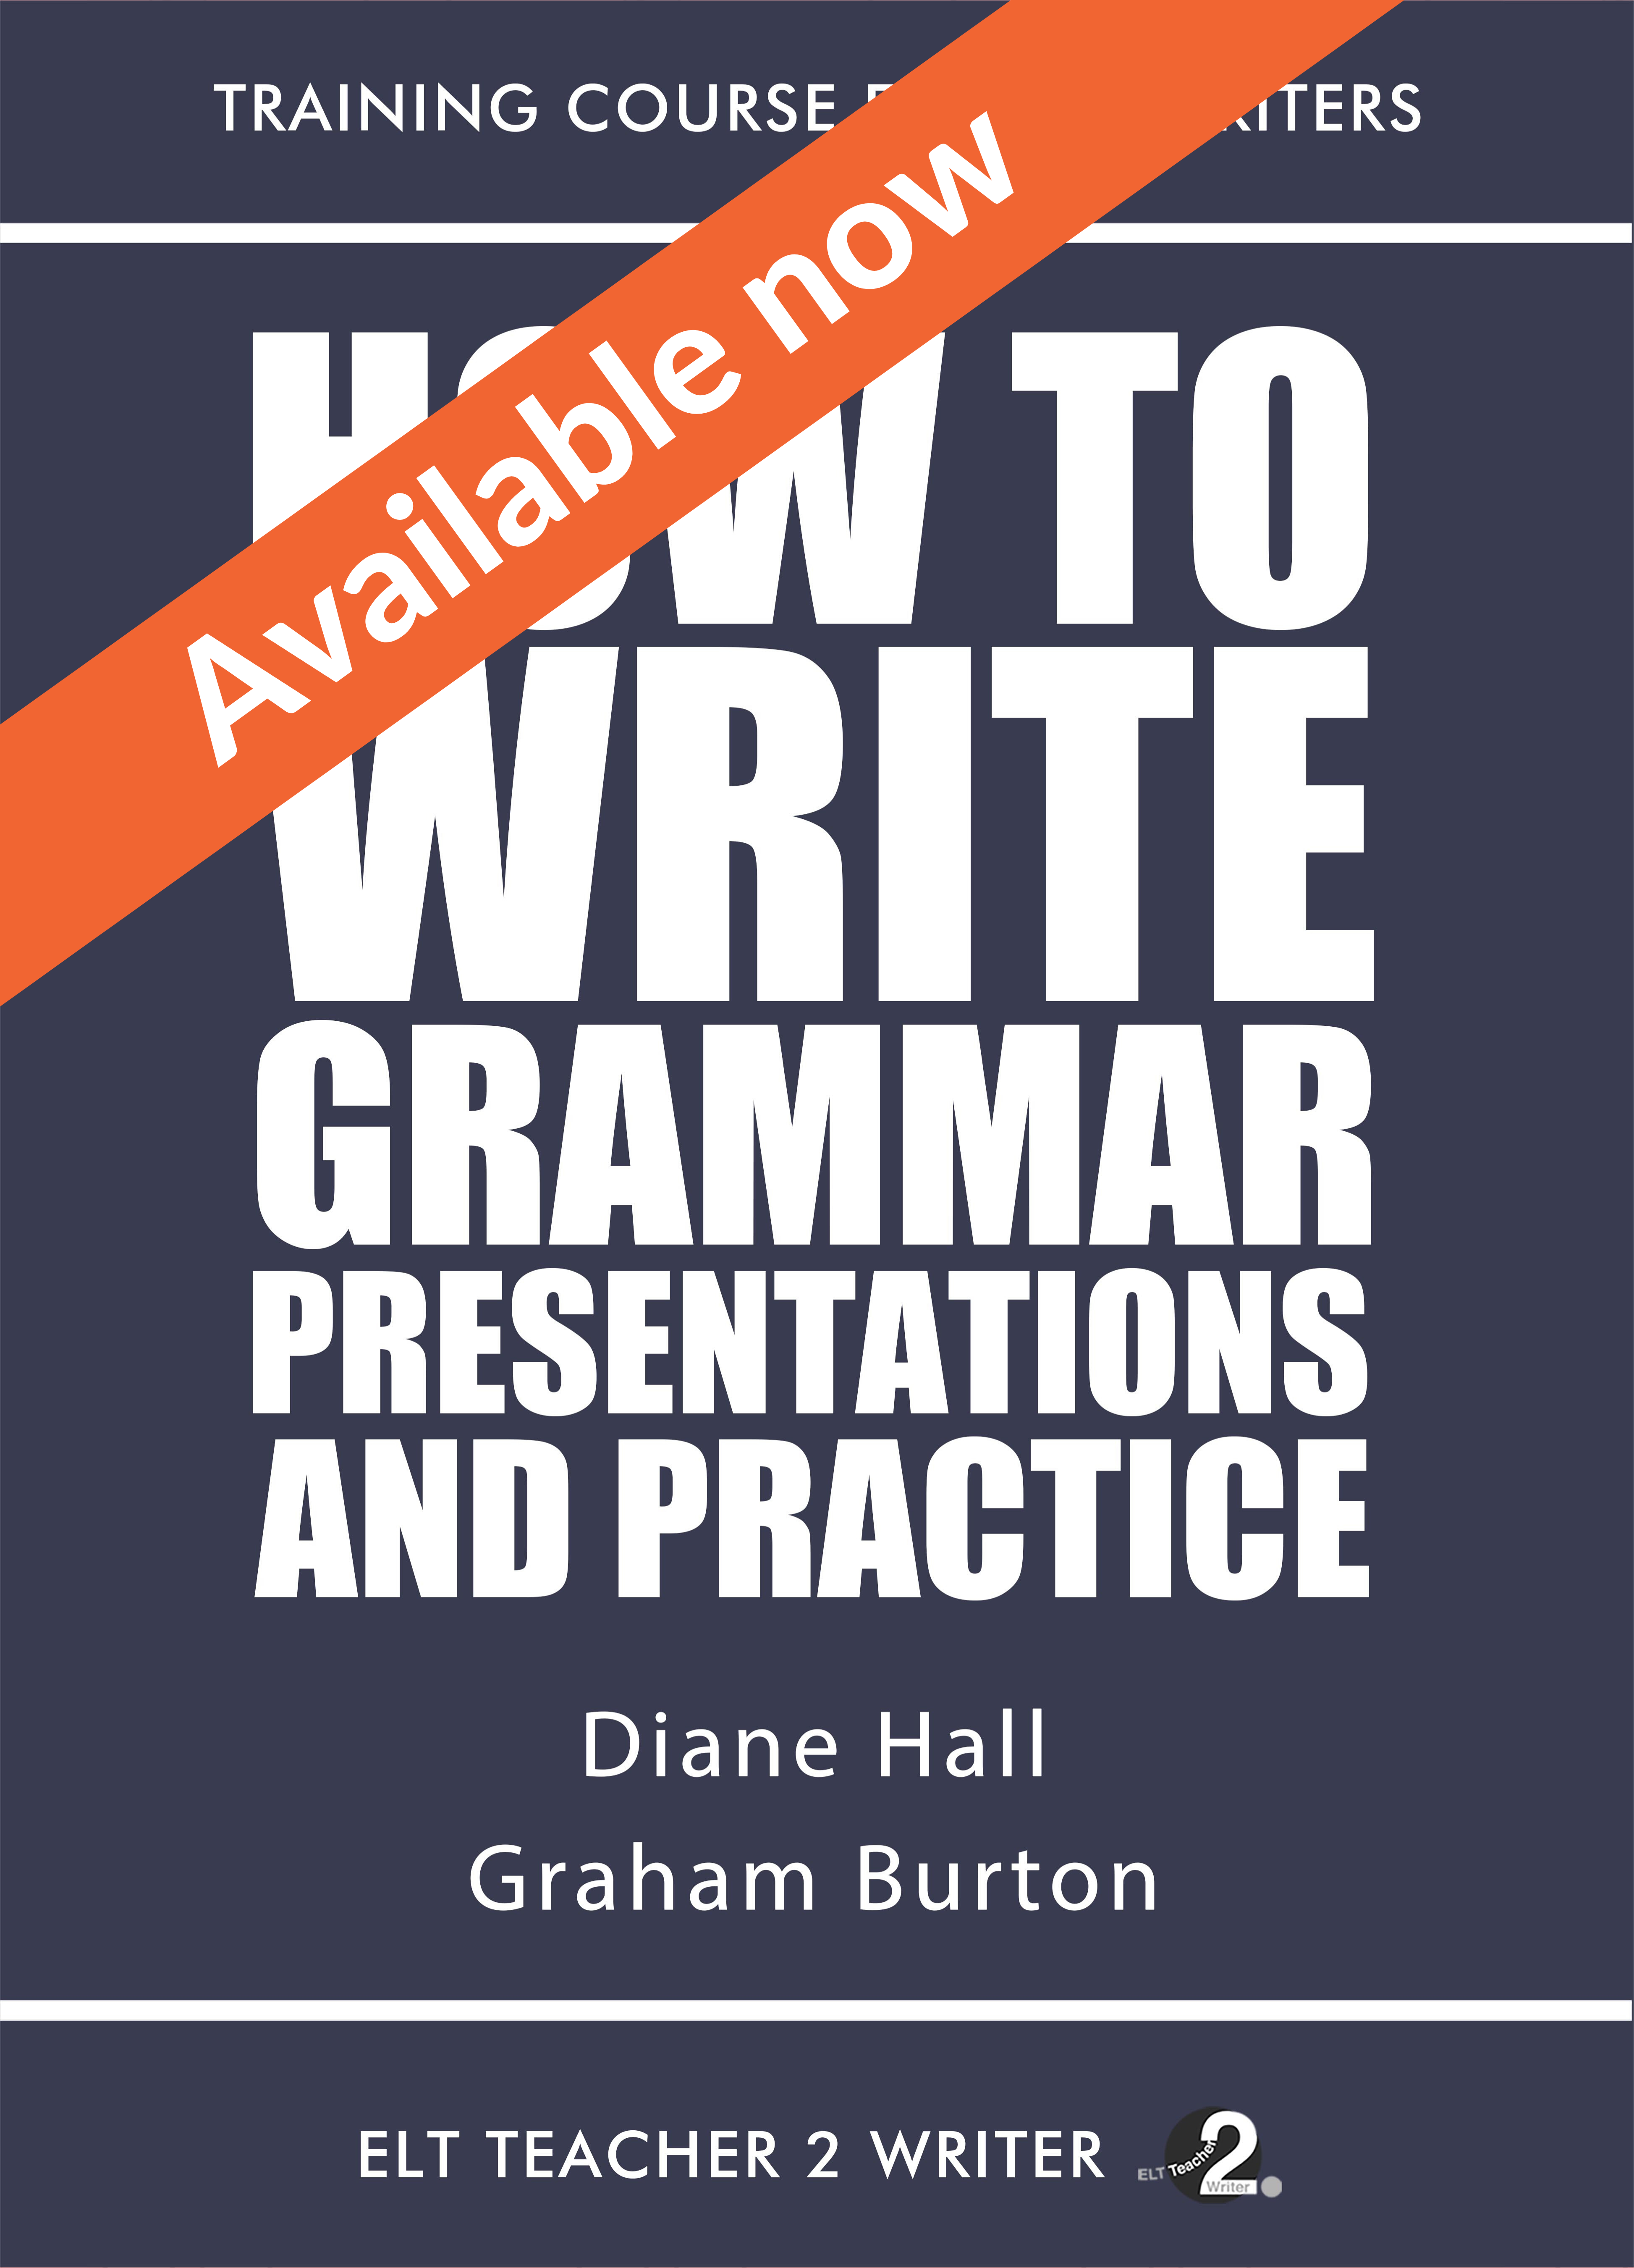 How To Write Grammar Presentations And Practice